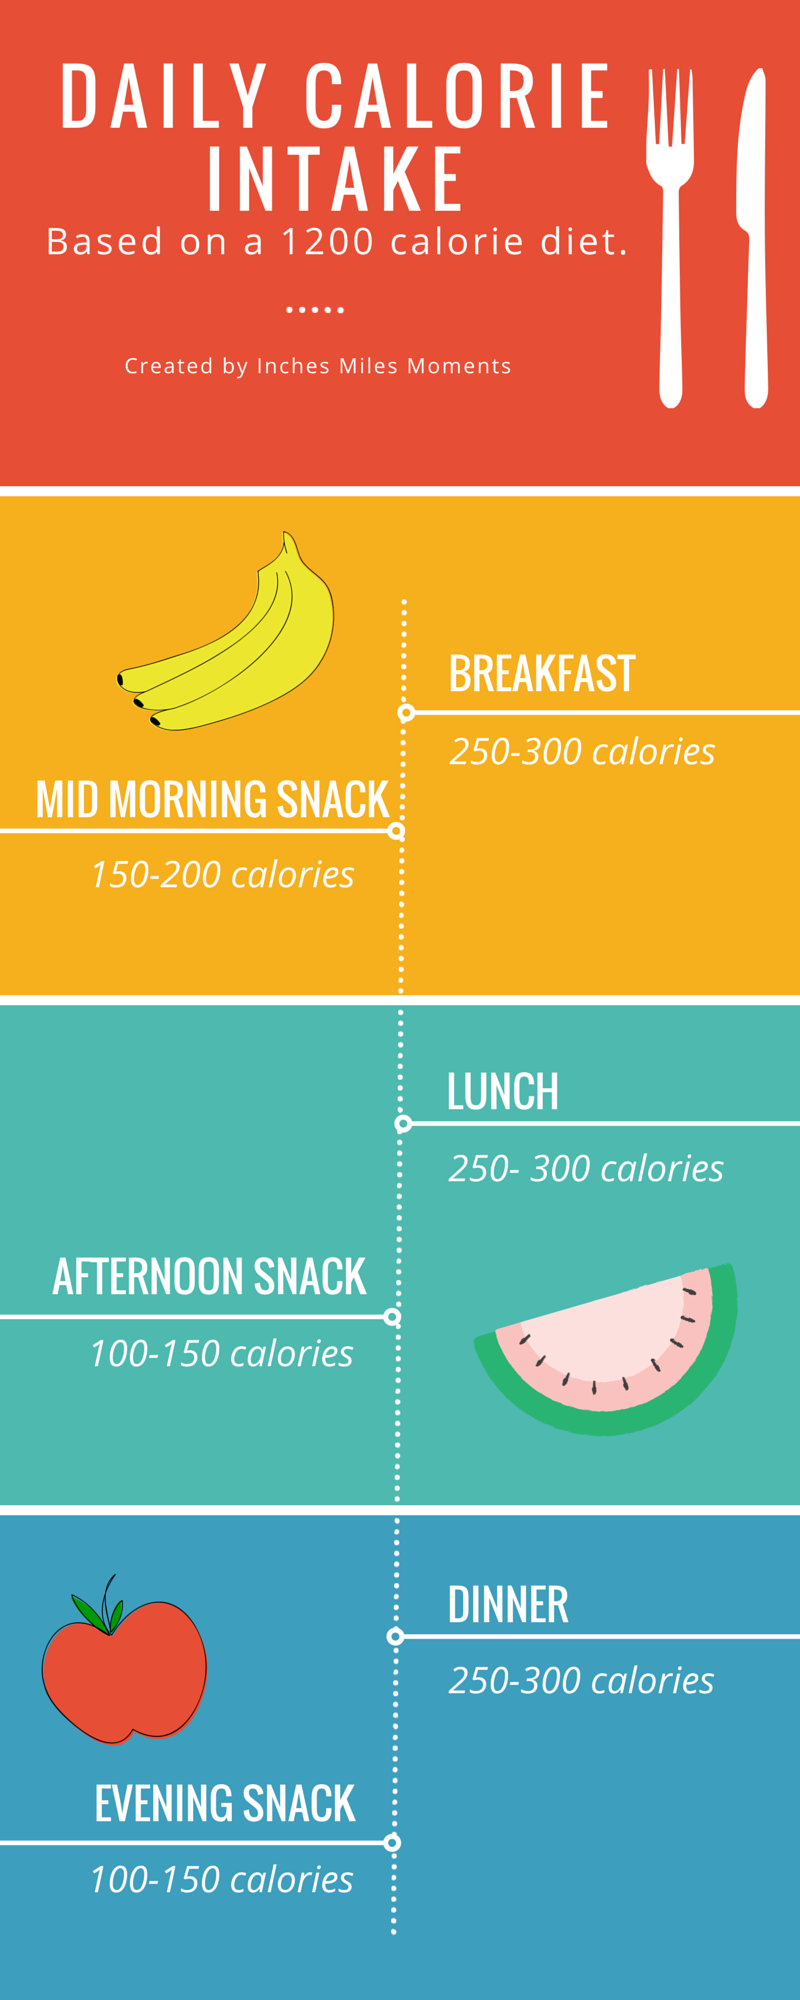 Learn How To Count Calories And Lose Weight With This Easy 1200